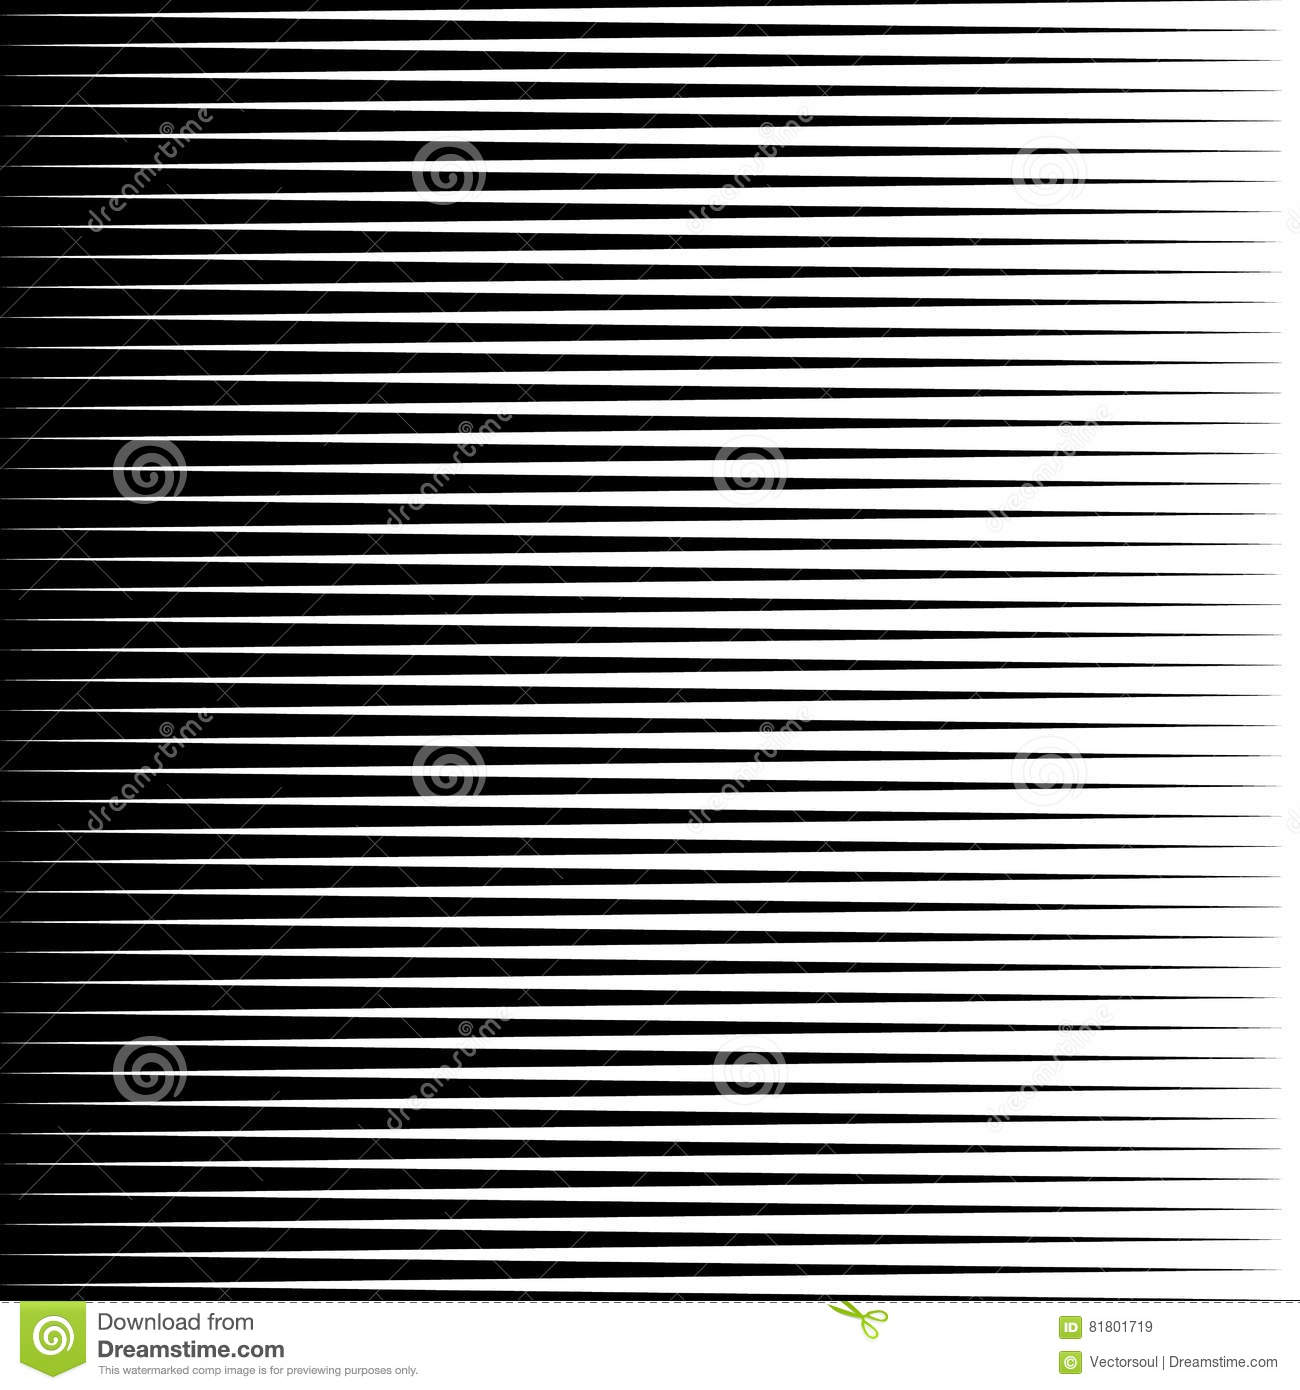 Parallel straight lines monochrome pattern geometric texture